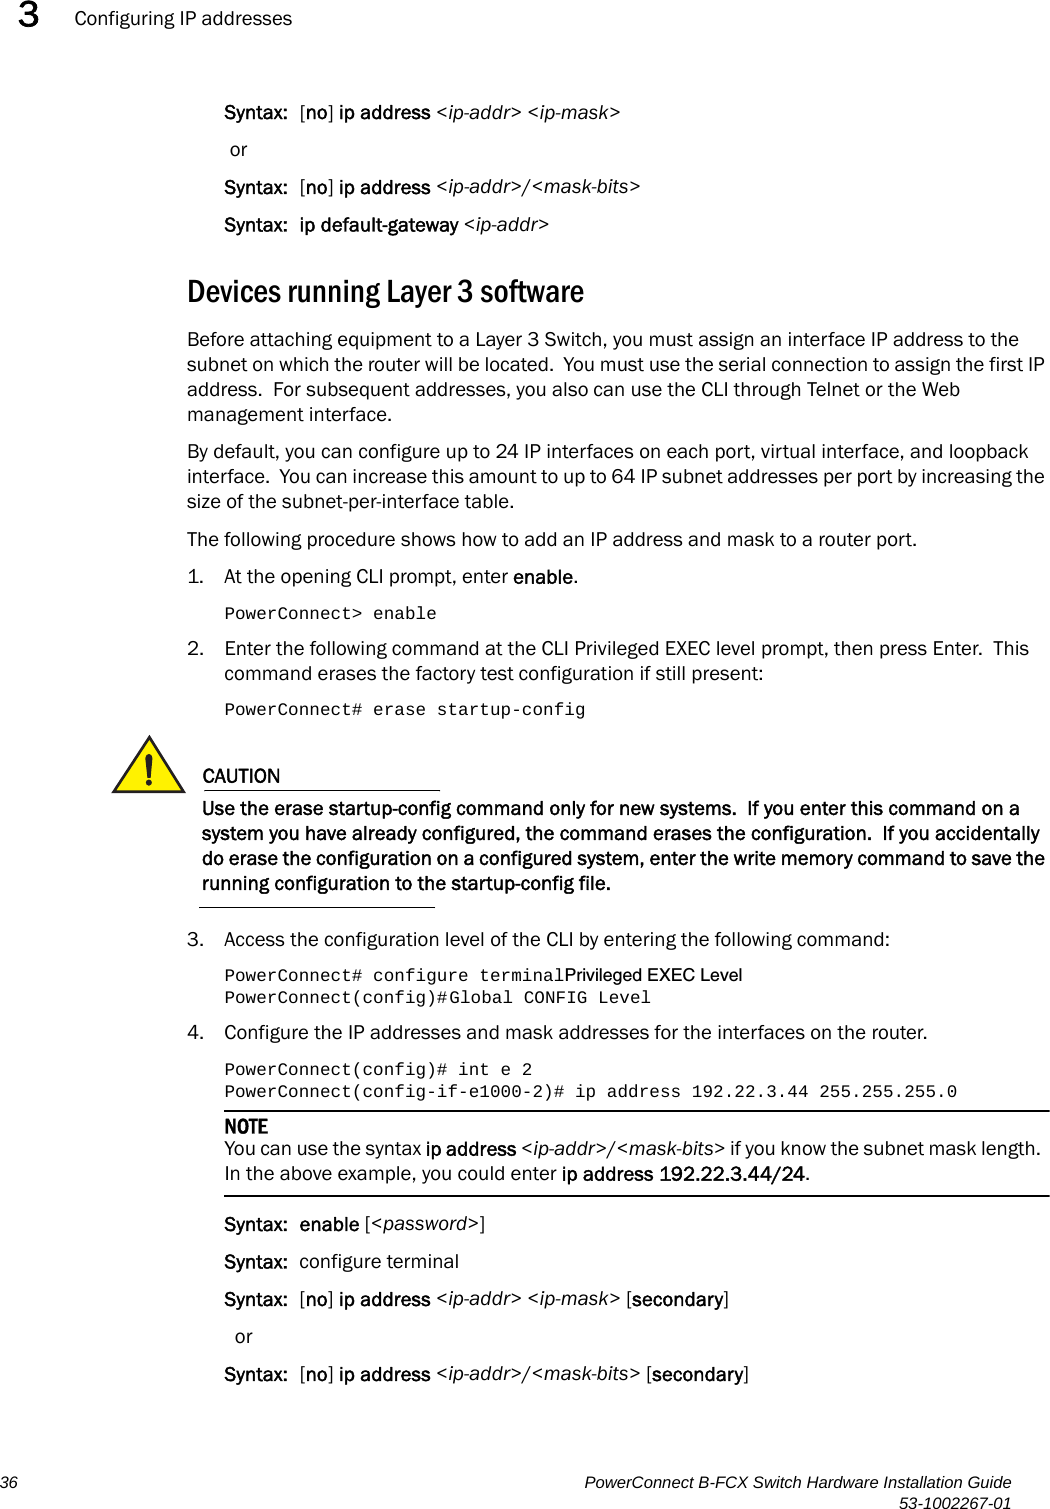 Dell Powerconnect B Fcxs Quick Start Guide Hardware Installation